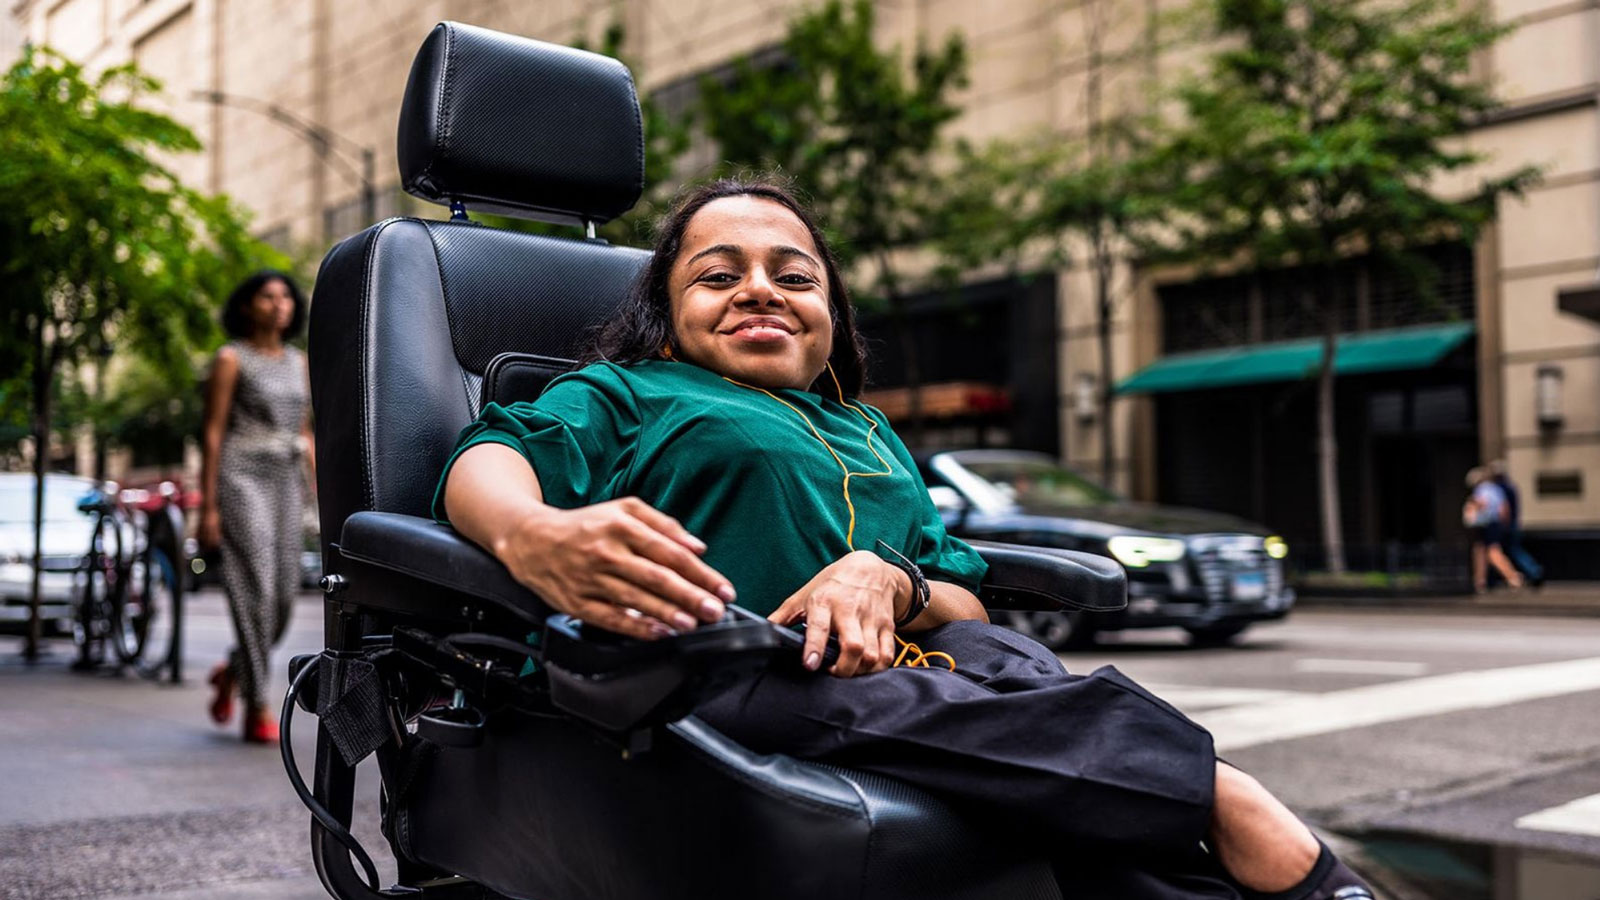 A young professional women with a big smile who is a power wheelchair user is crossing the street in a busy city.